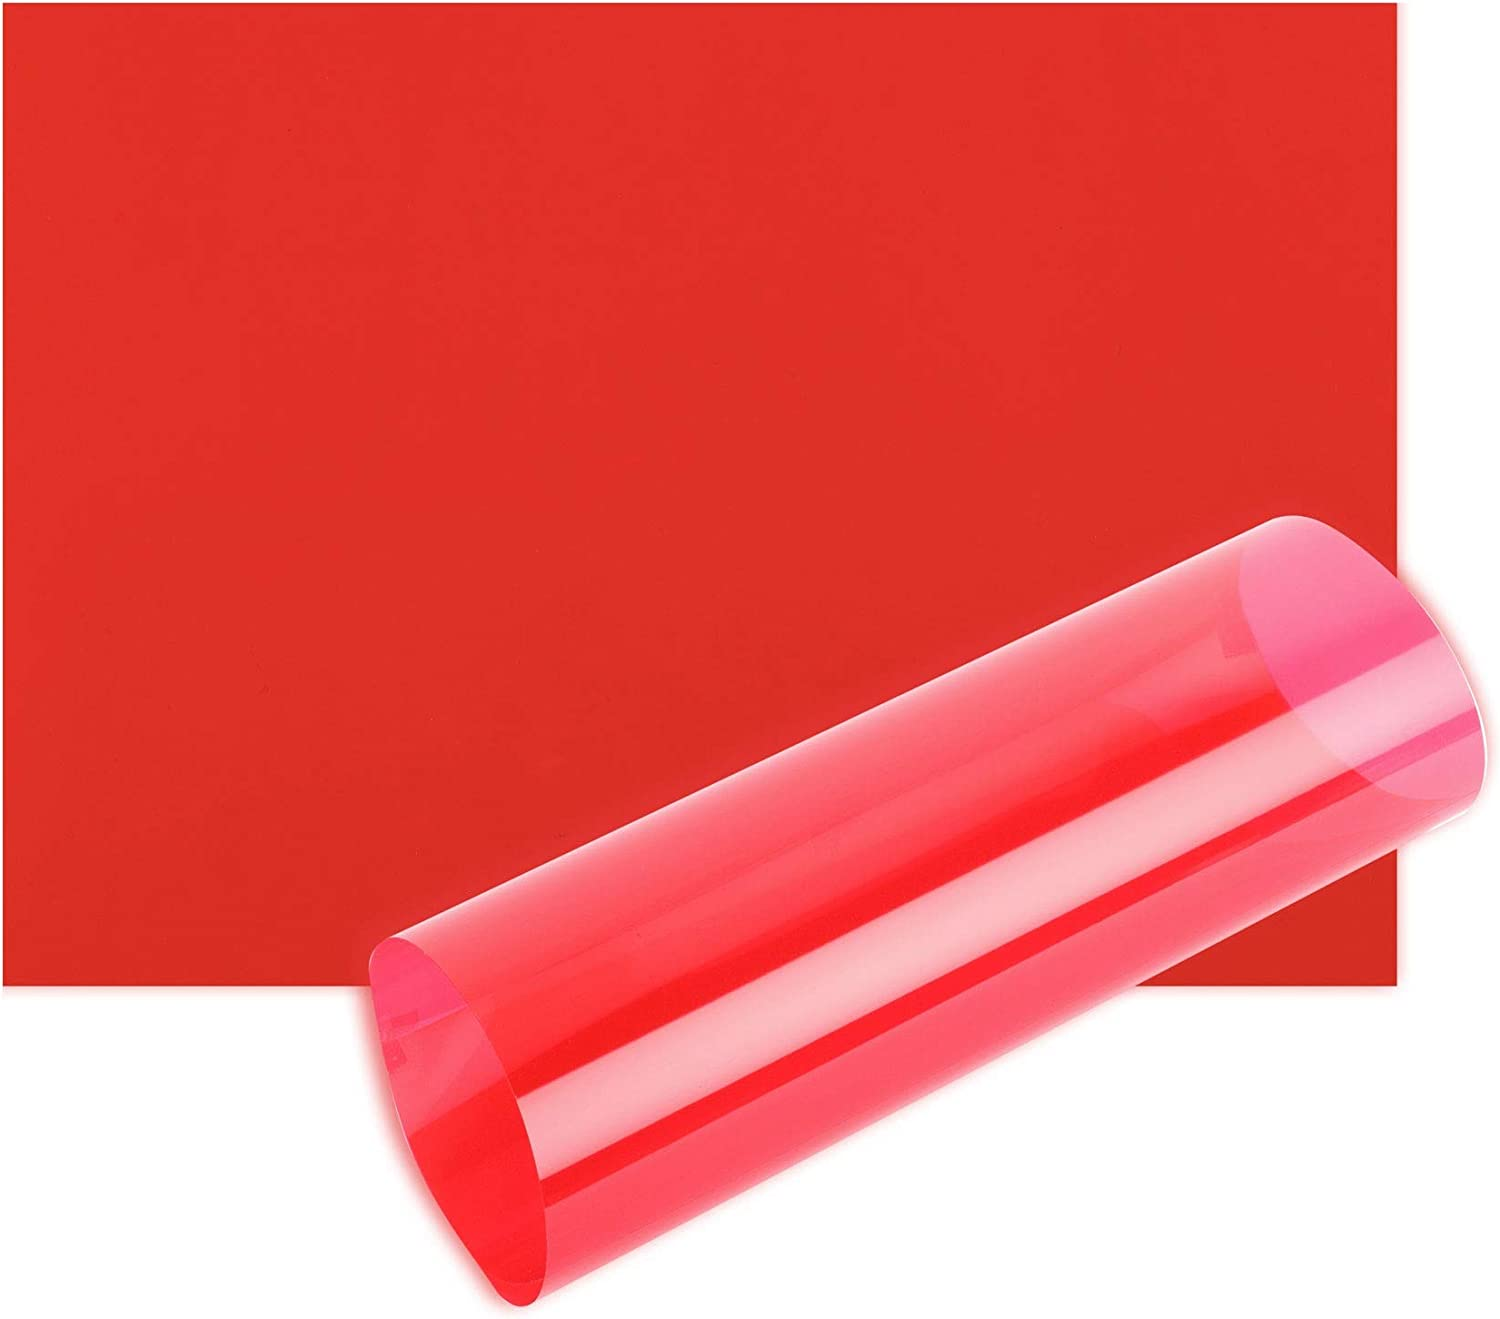 Acetate Sheets A4 Ohp Sheet Colour Acetate Clear Film Plastic Light Filter Gel Reading Aid Thick 100 Micron Reading Aid A4 Size Red 1 Sheet Amazon Co Uk Office Products